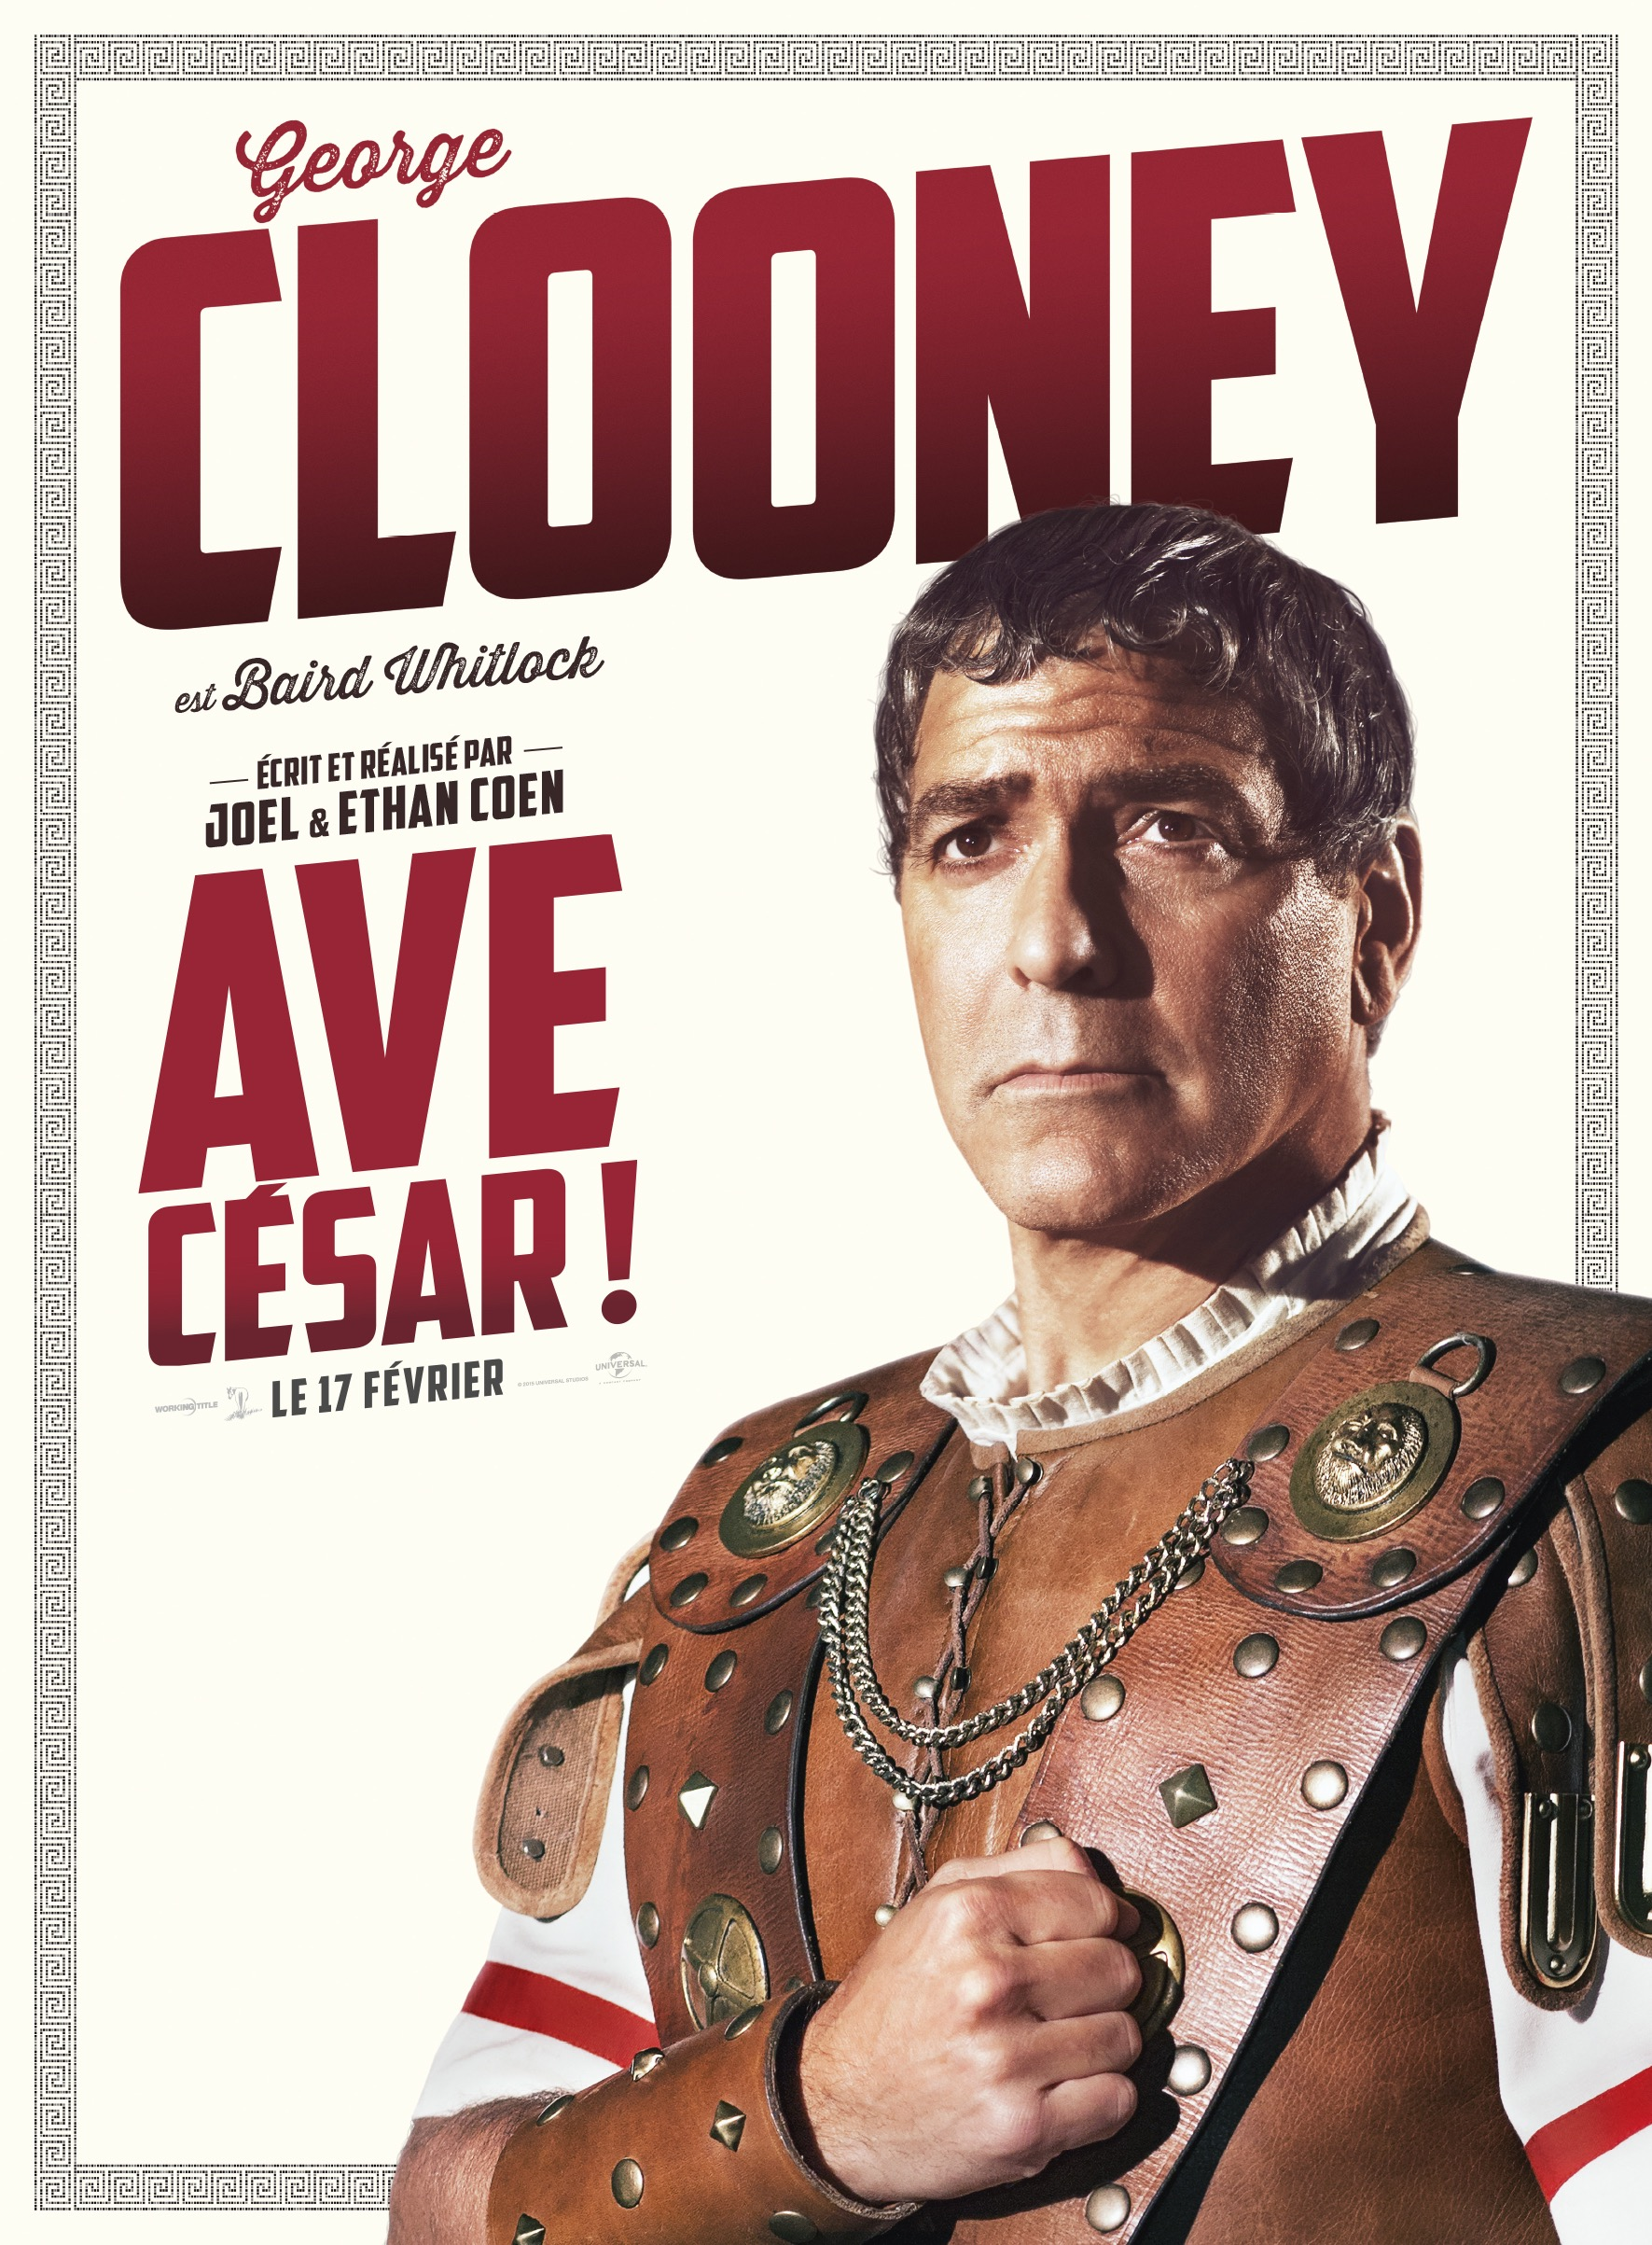 Ave Cesar affiches perso2